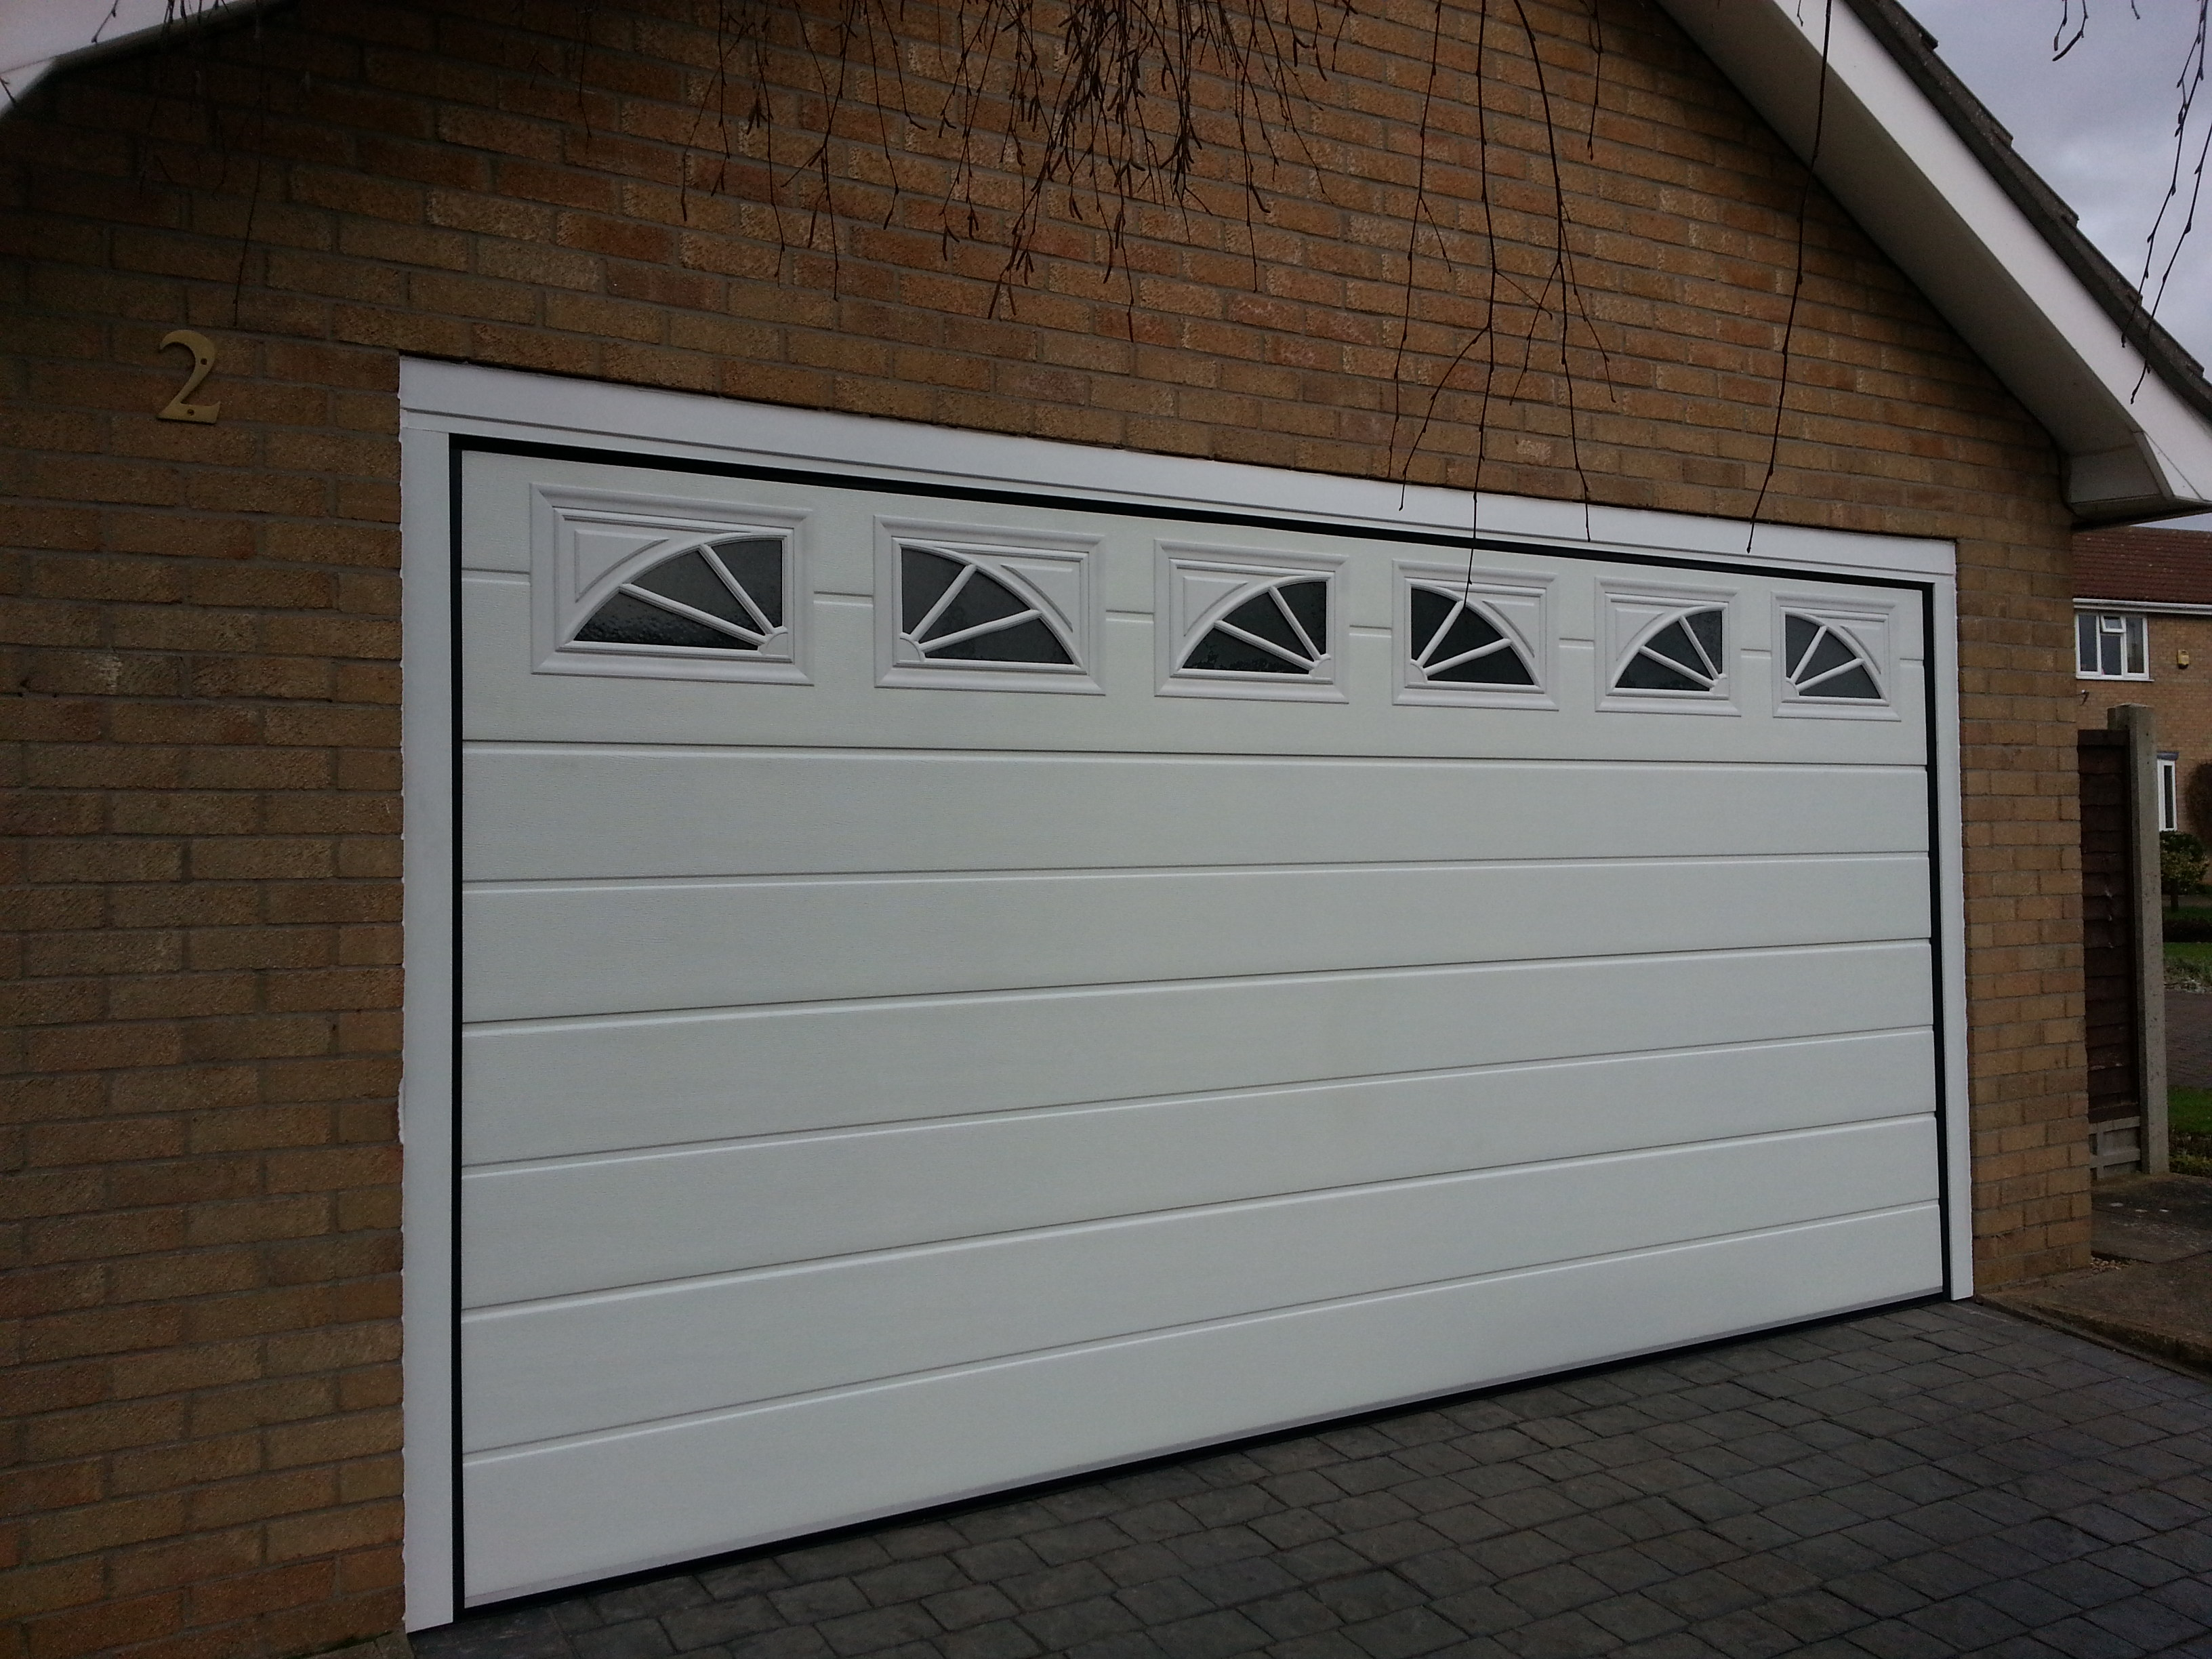 New Garage Door With Windows Grantham Garage Door